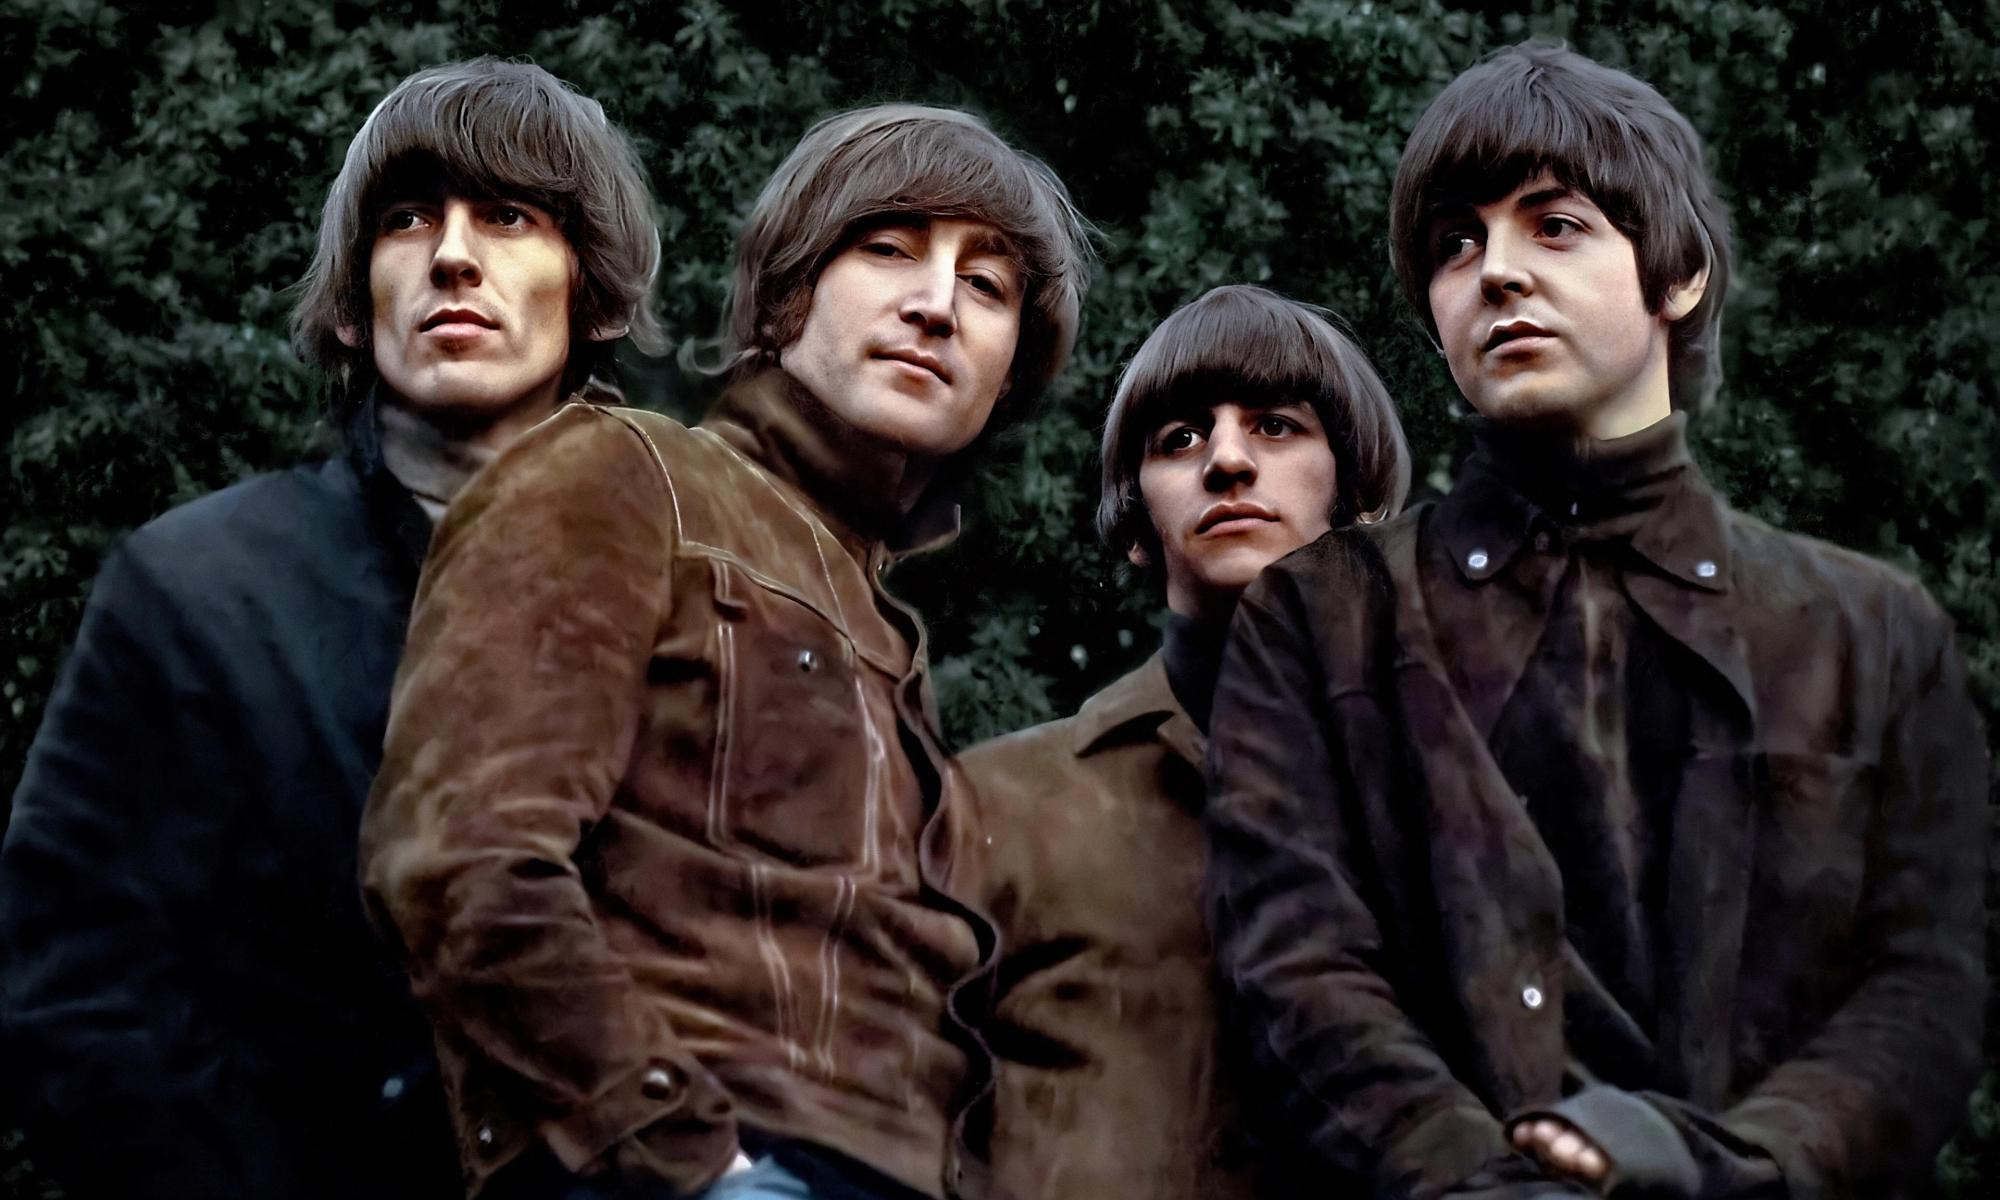 The Beatles - Rubber Soul (1965) - My Top 5 - Header